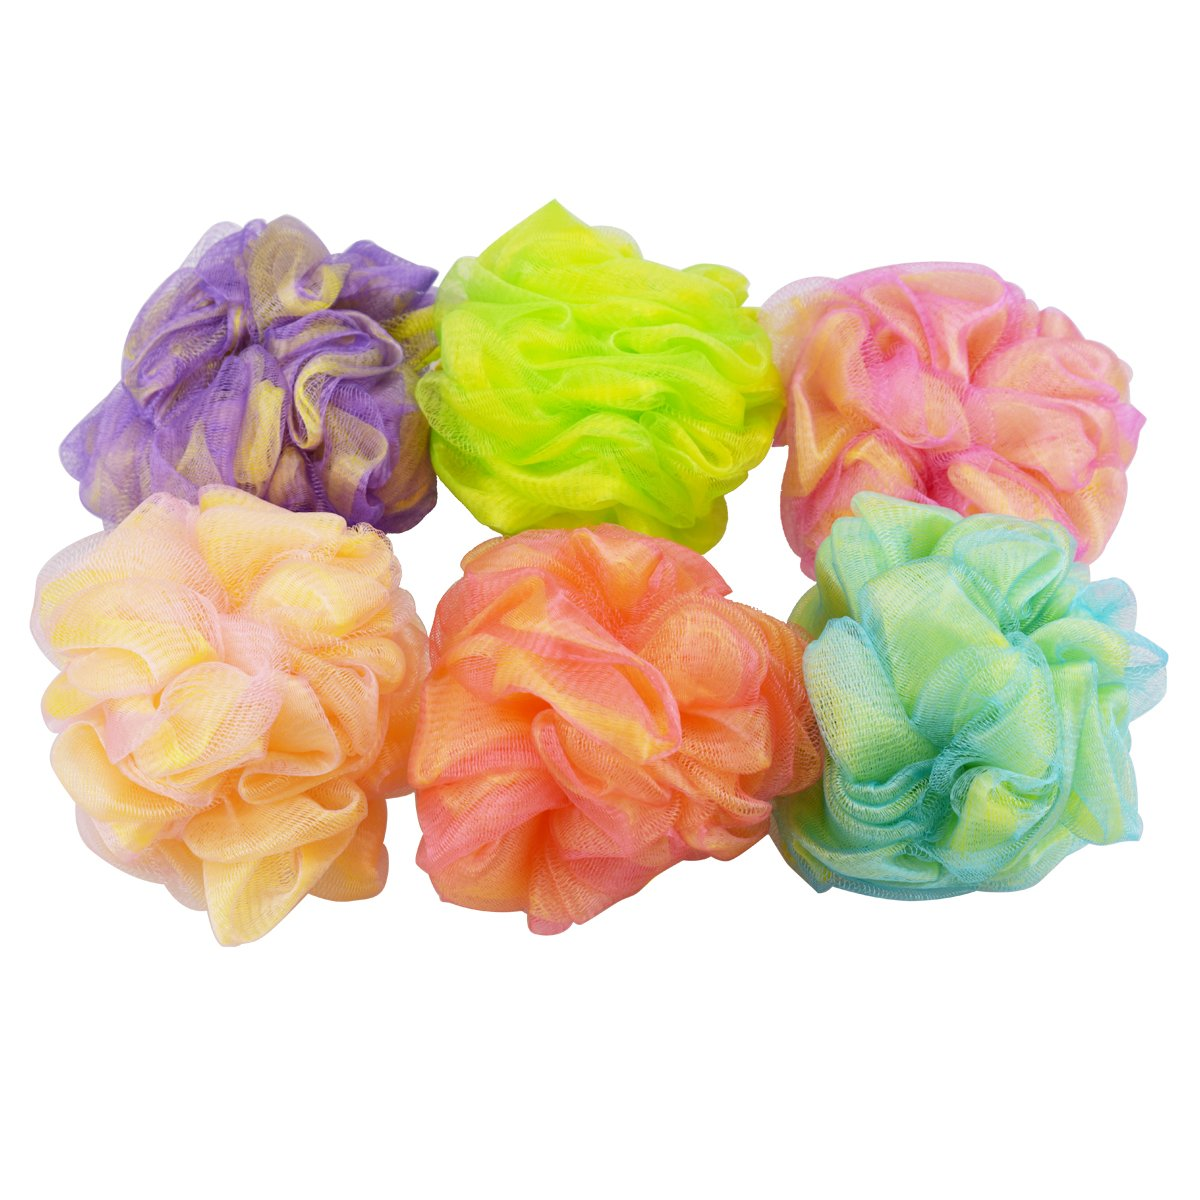 Set of 6 - High Quality Mesh Shower Sponges / Exfoliation Body Puffs / Bath Scrubbers, Assorted Colors, (50g/pc) Y2